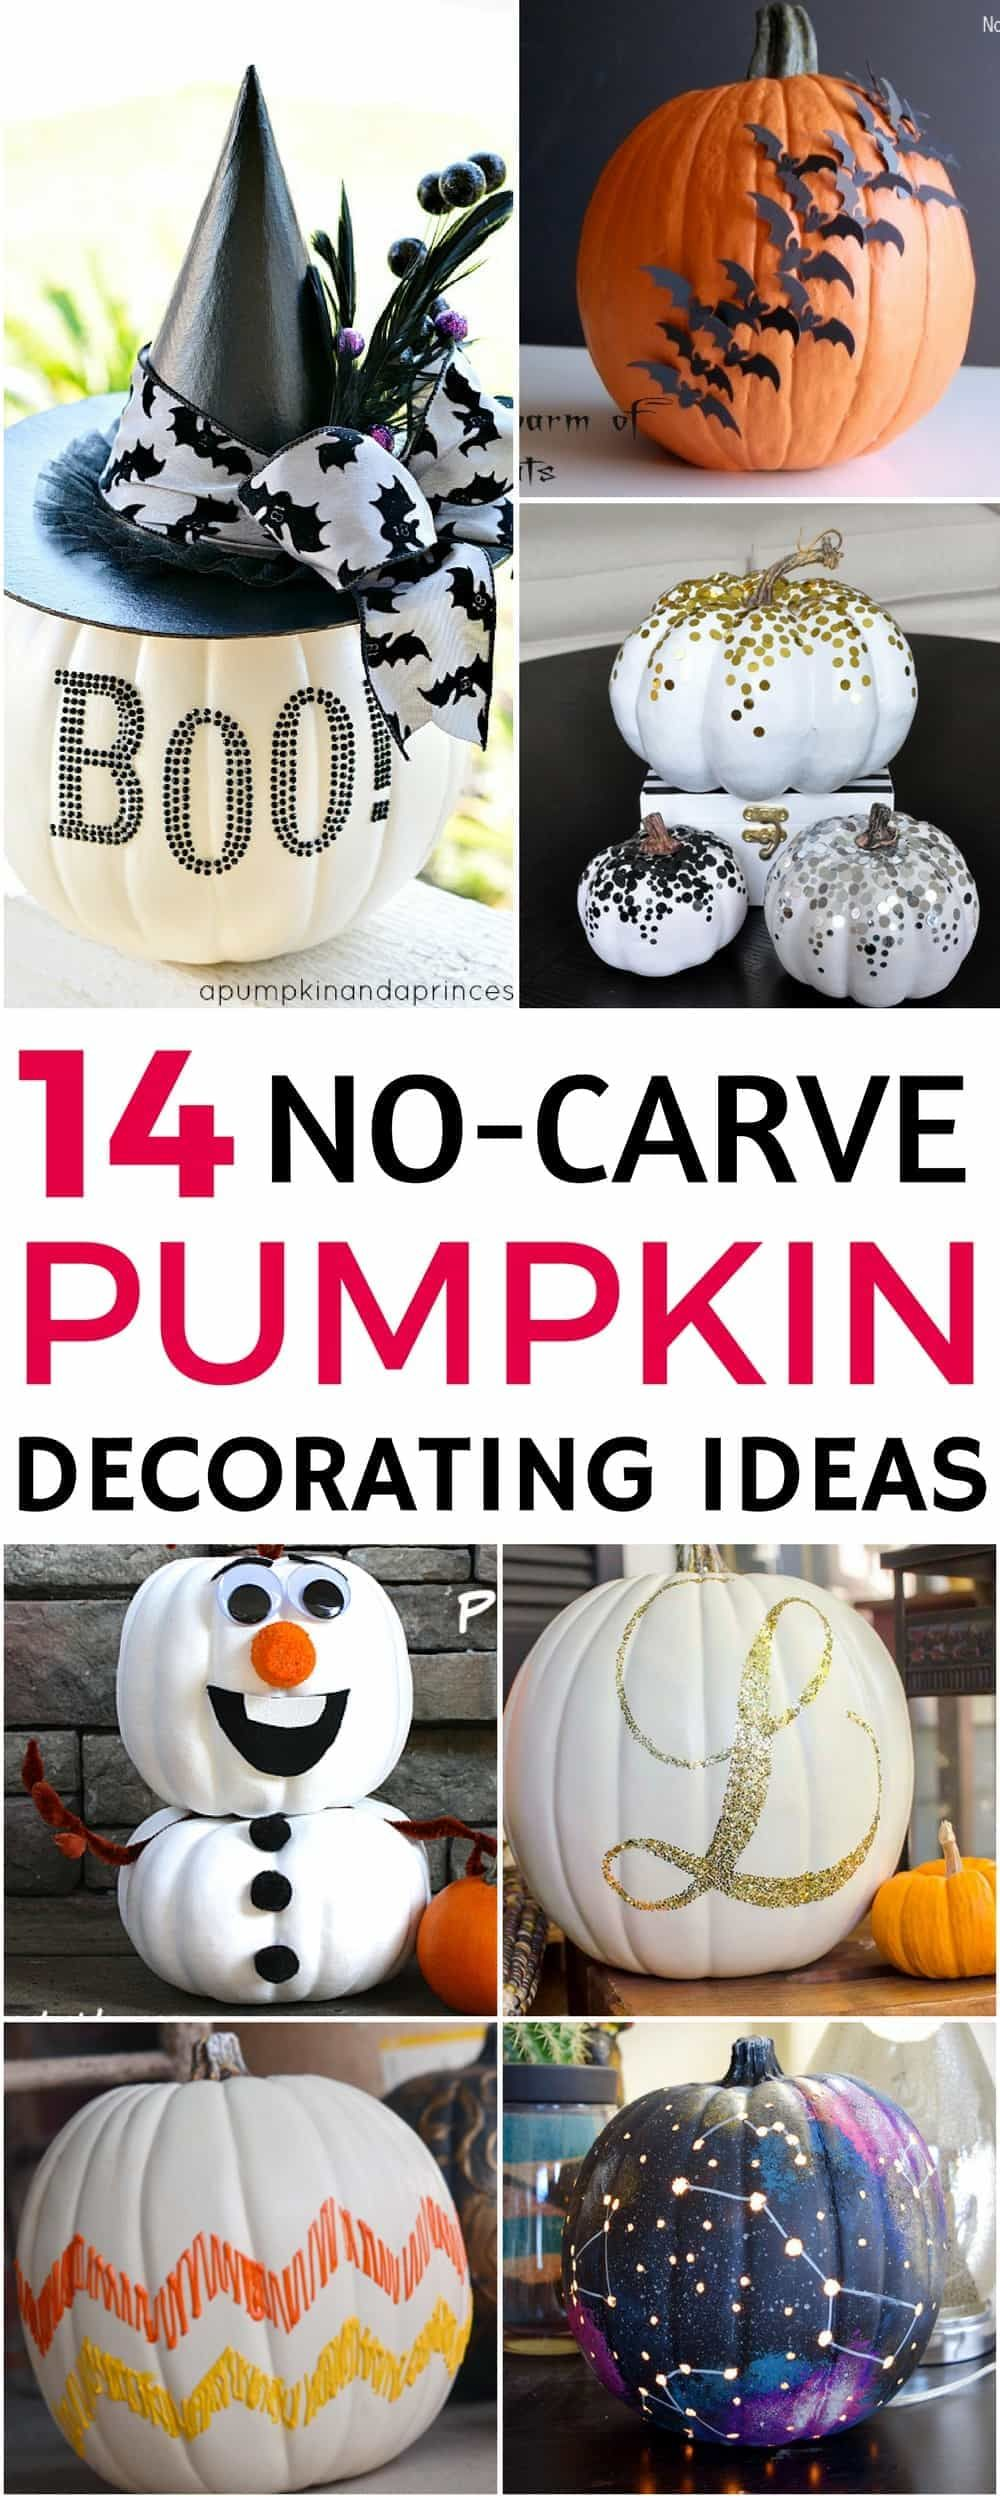 Are You Looking For Some Pumpkin Decorating Ideas Have A